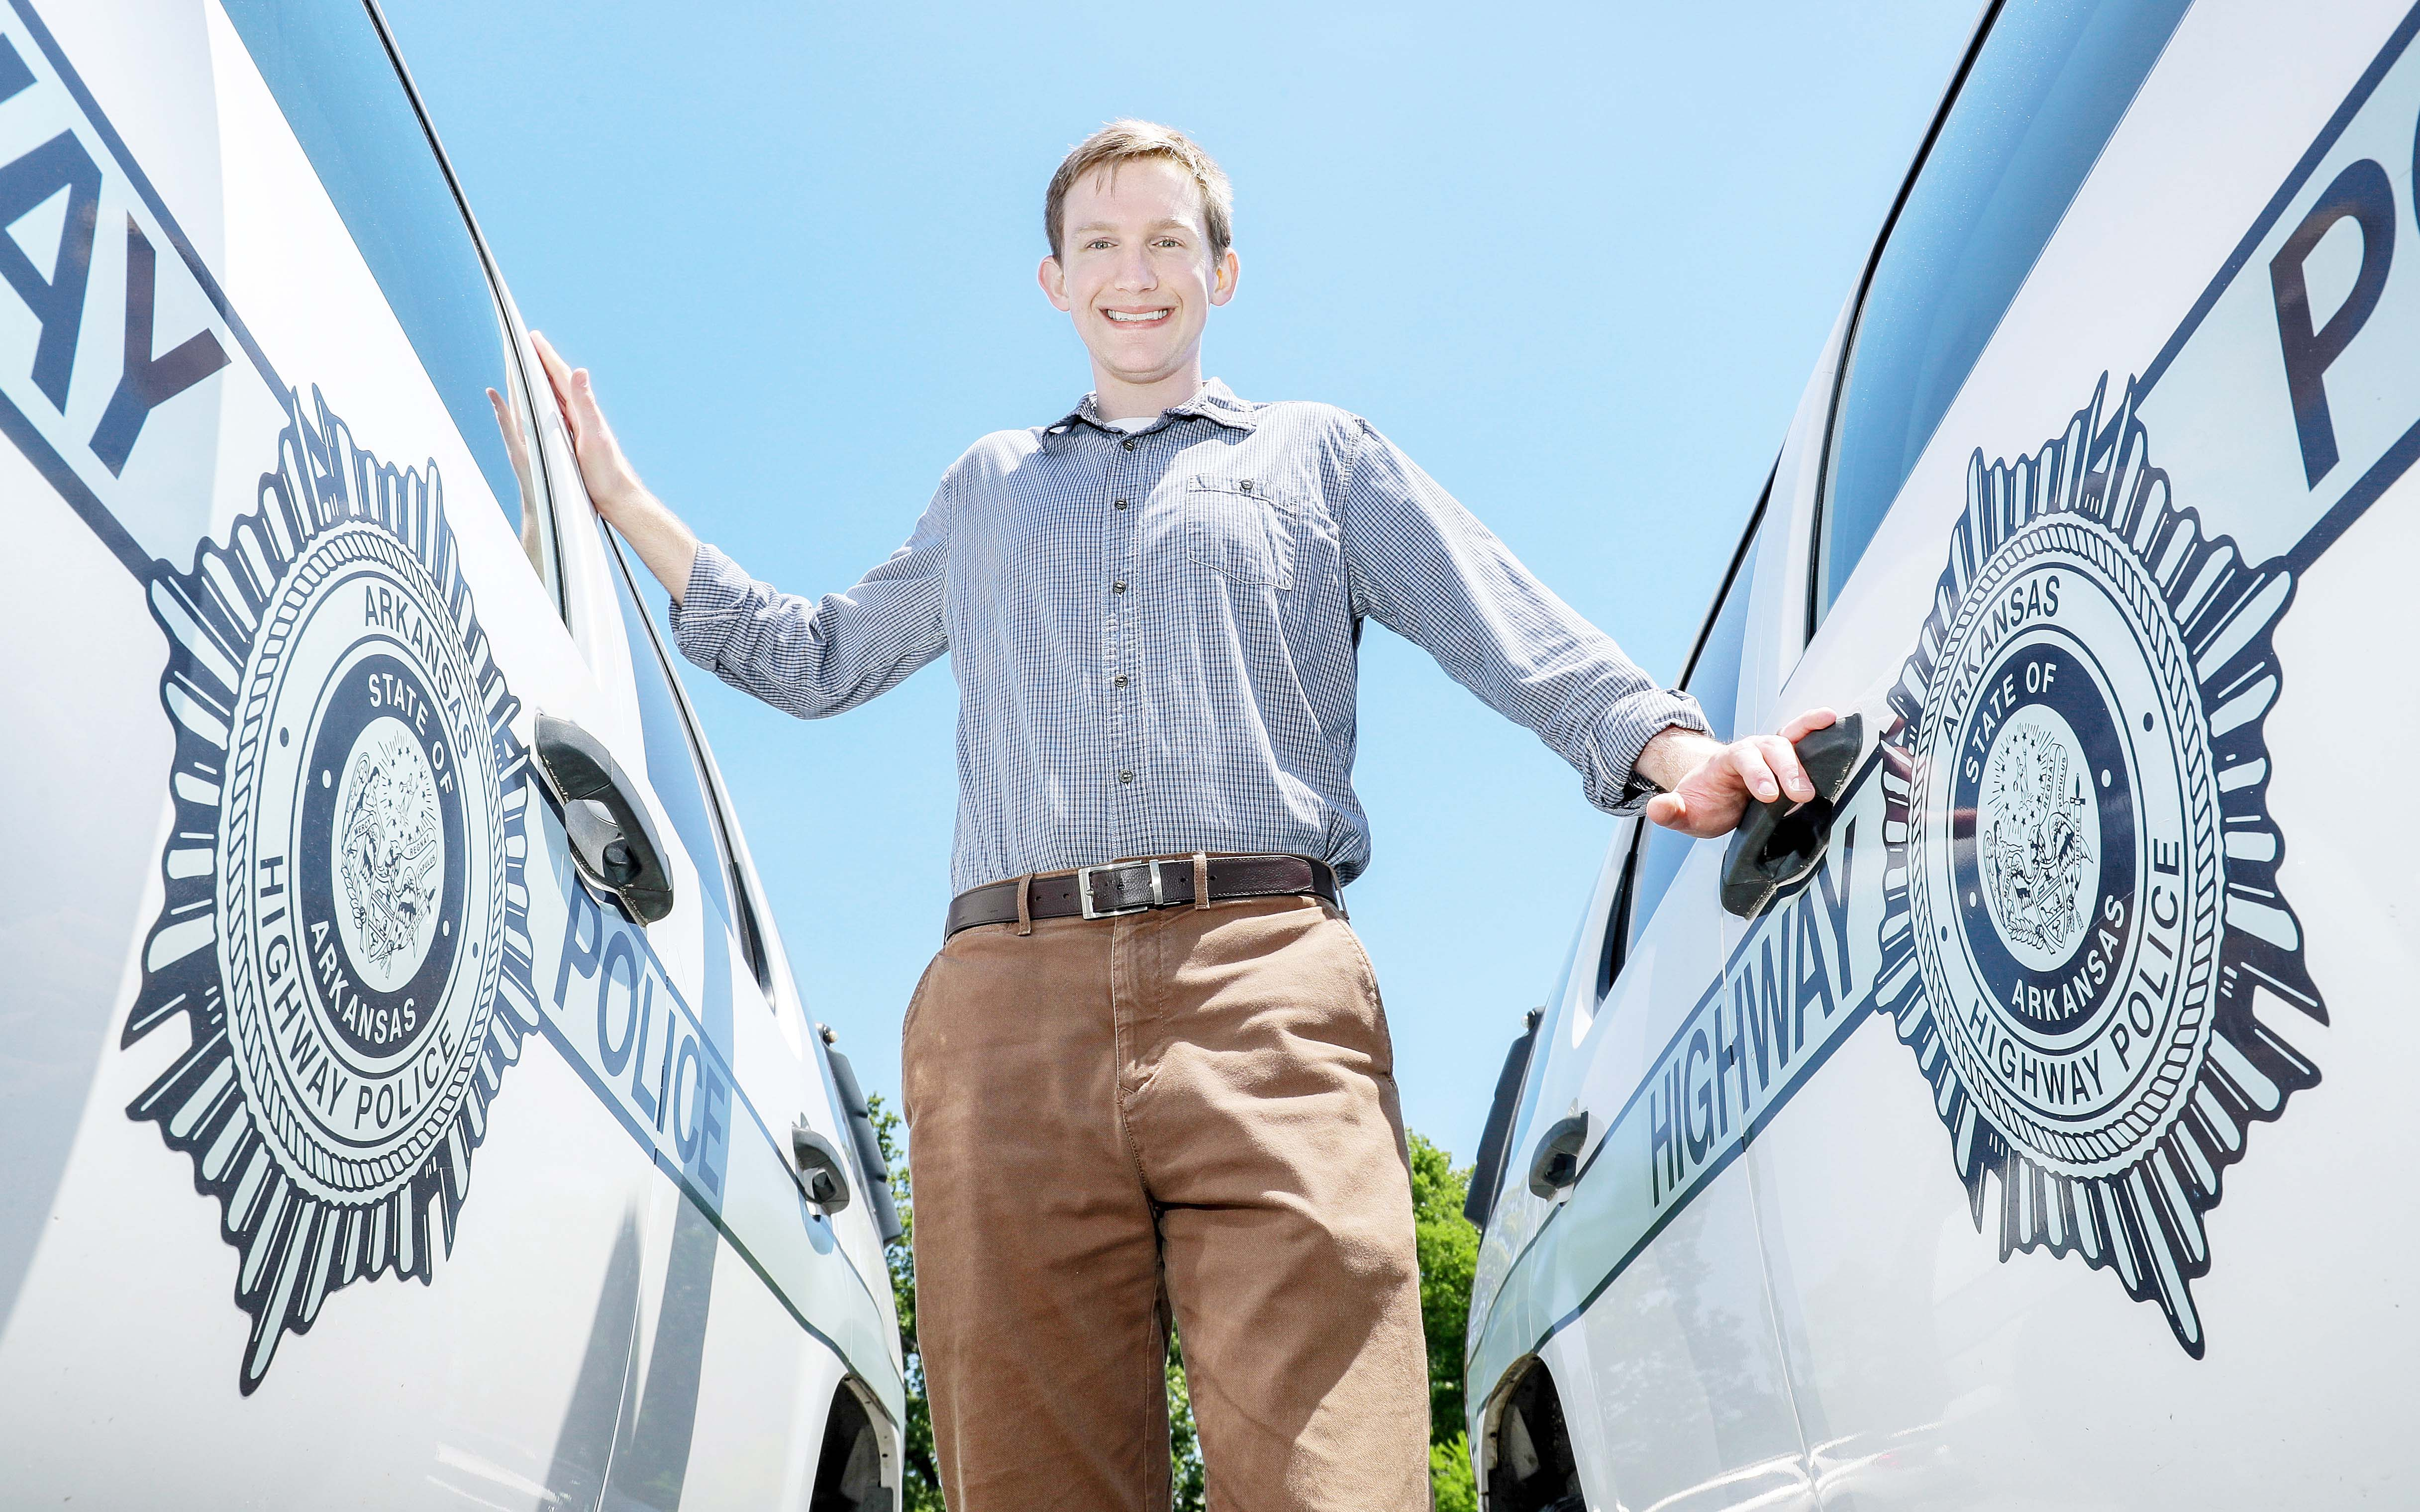 Cody Besett stands between two Arkansas Highway Patrol vehicles. (Photo by Ben Krain)